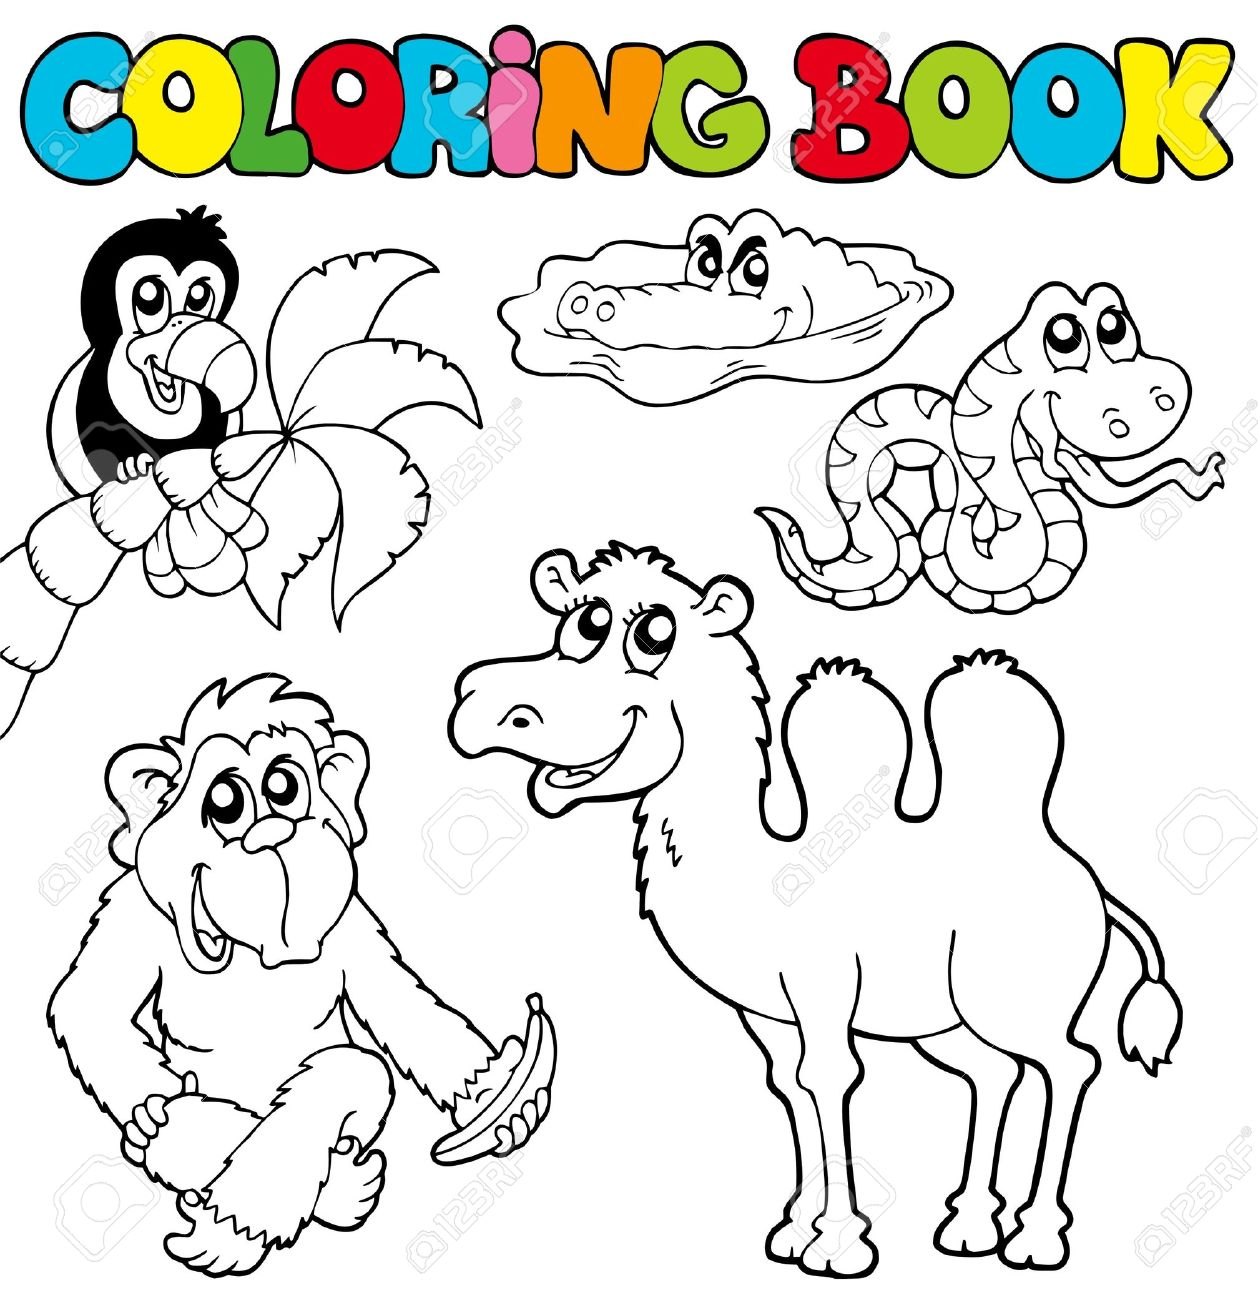 Coloring Book With Tropic Animals 3 -illustration. Royalty Free ...